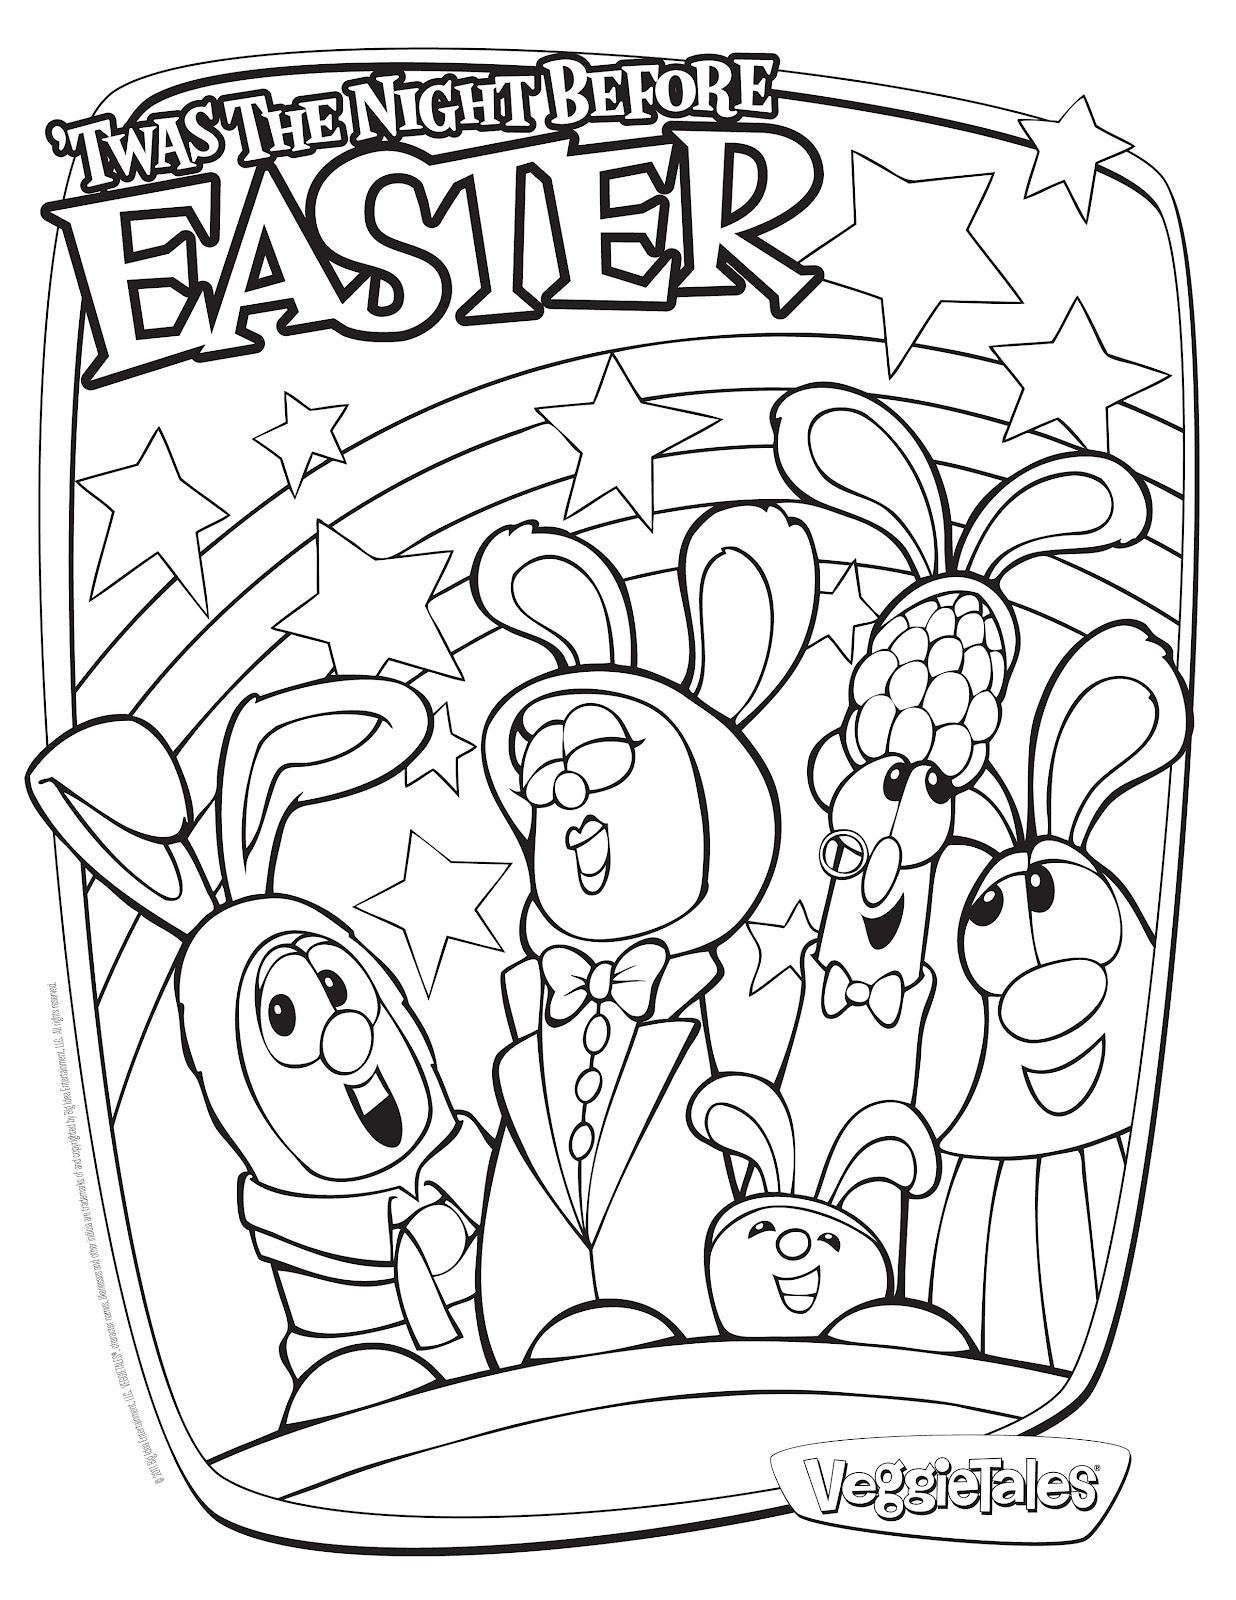 01/04/12 - 01/05/12 | free printable religious coloring pages for easter